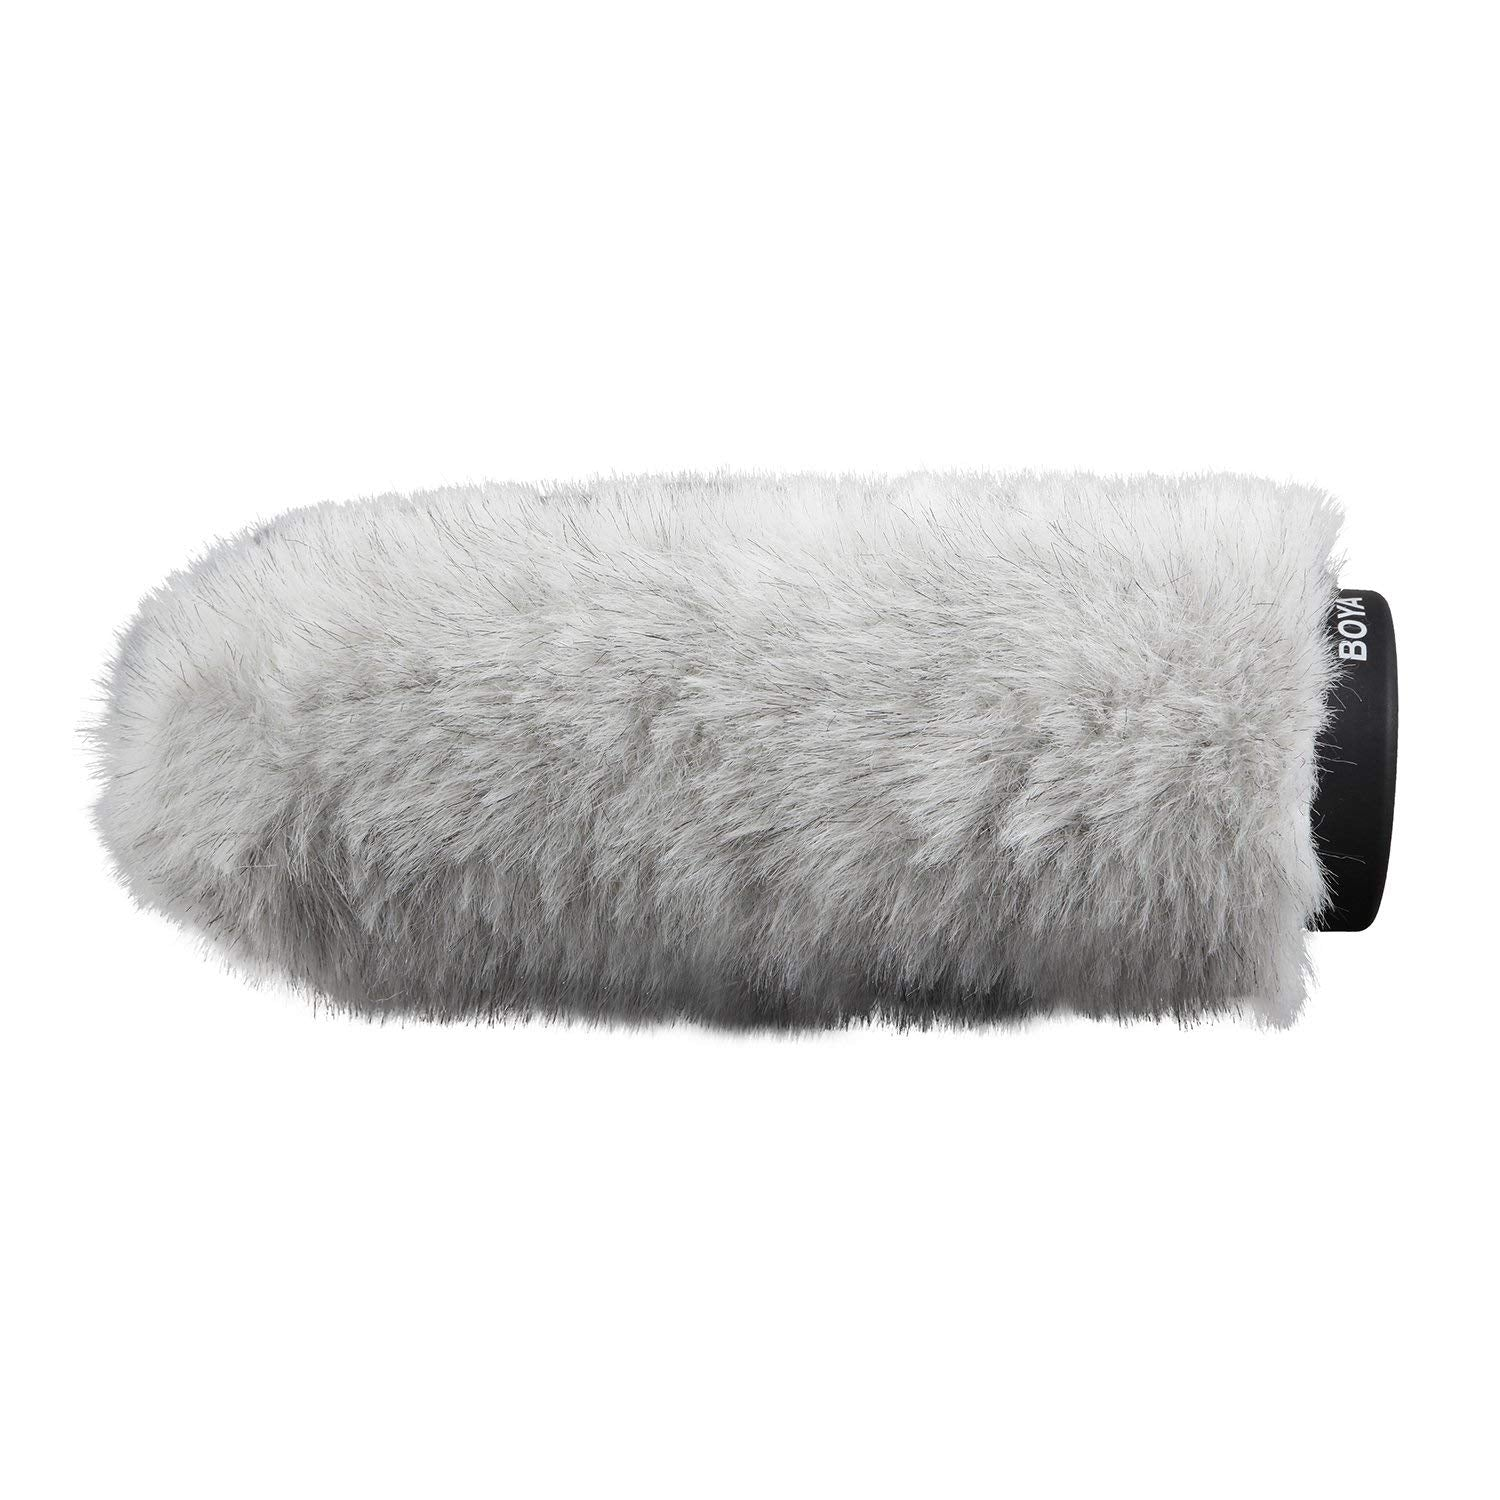 BOYA BY-P220 Furry Outdoor Interview Windshield Muff for Shotgun Capacitor Microphones (Inside Depth 8.8)